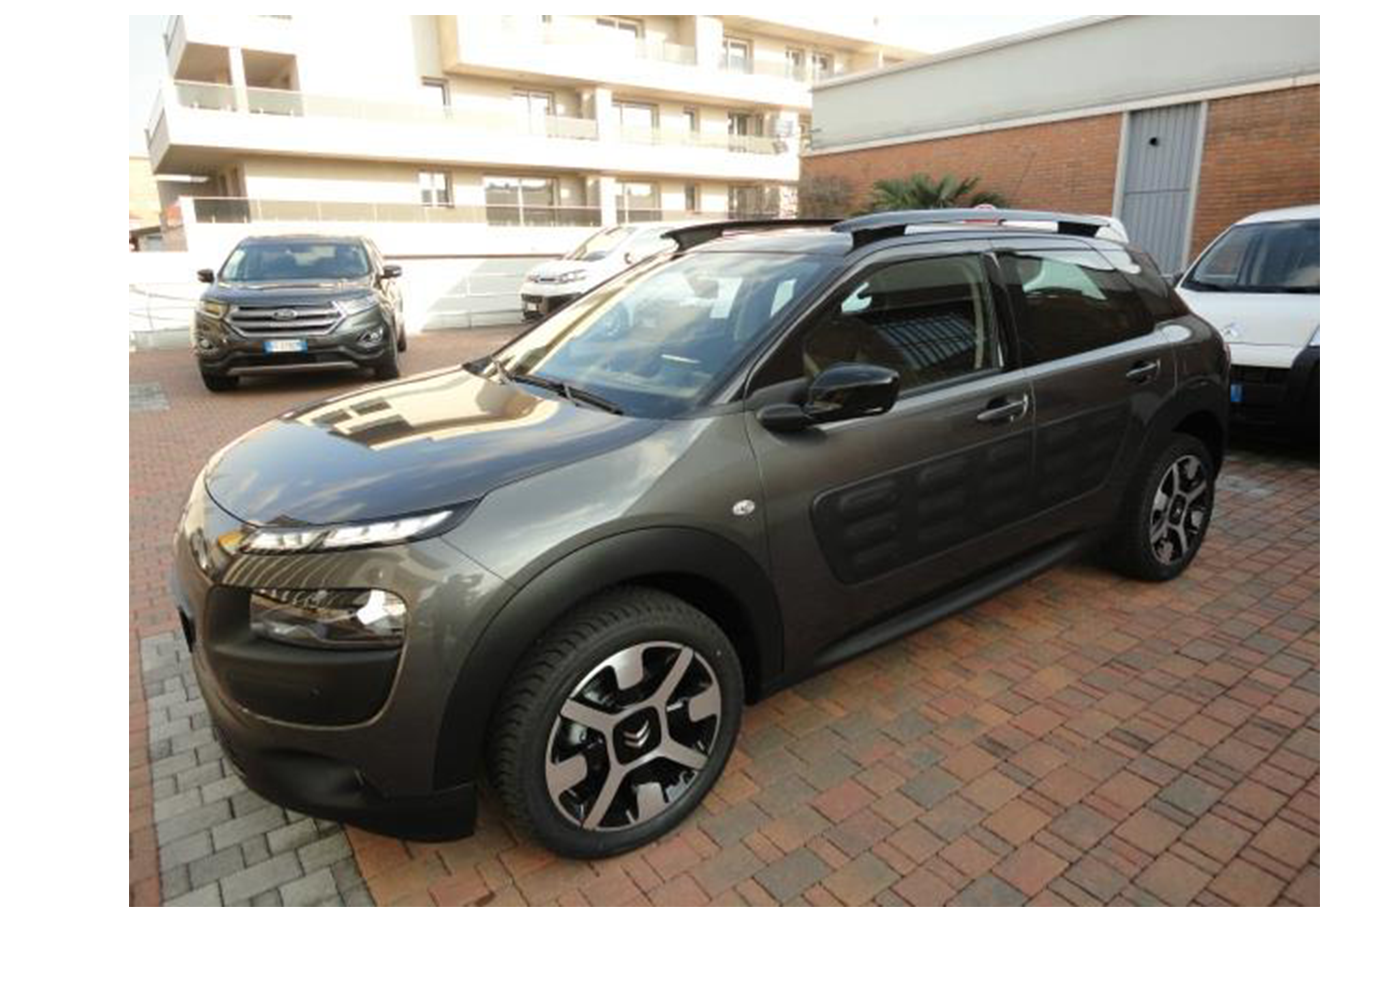 citroen c4 cactus bluehdi 100 feel edition grigio platinium km0 a soli 14550 su miacar x90mq. Black Bedroom Furniture Sets. Home Design Ideas